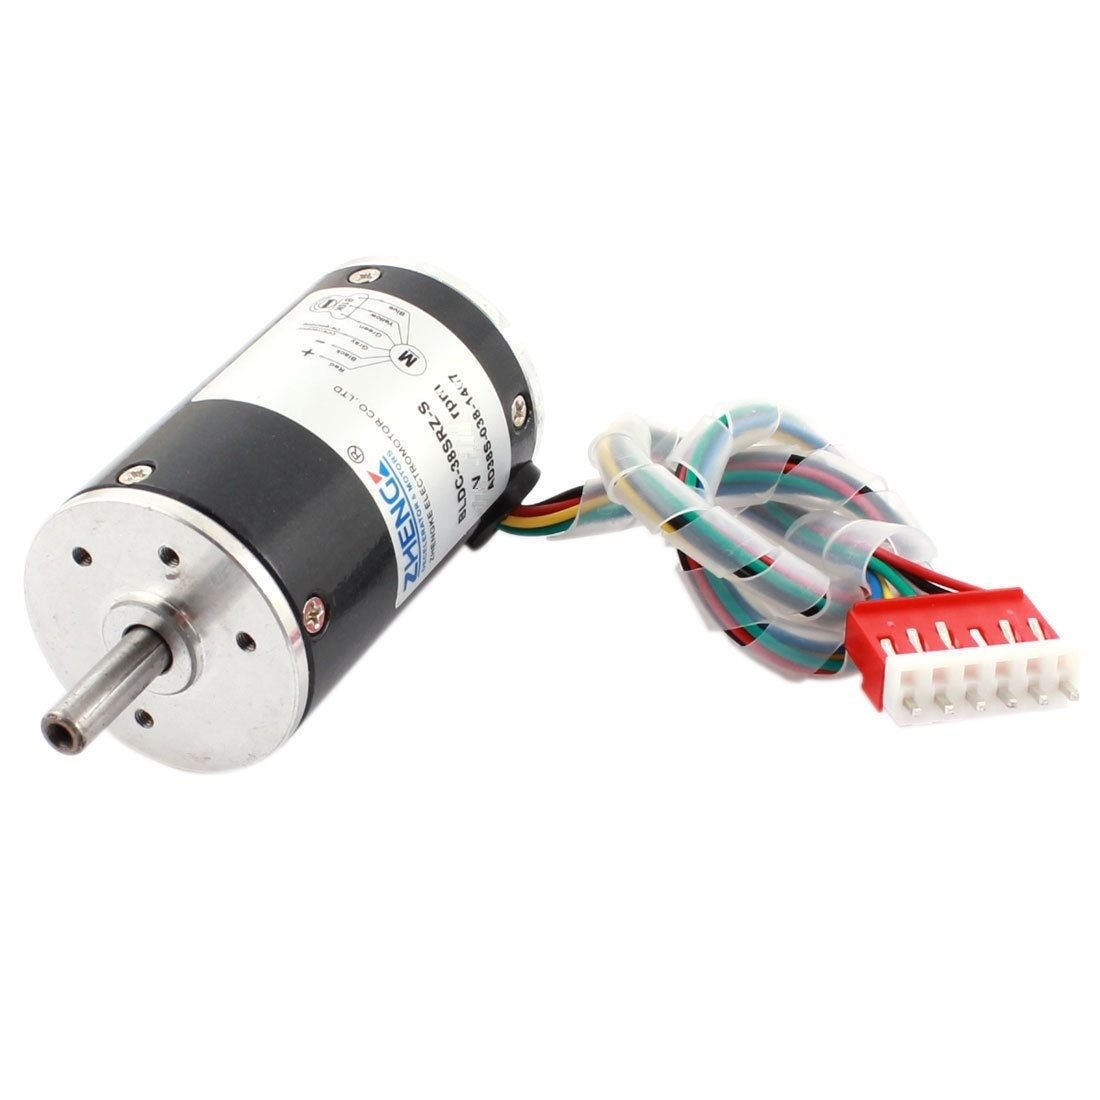 DC 12V 2000R 38mm Diameter Low Noise Adjustable Speed Brushless Motor 100G.cm